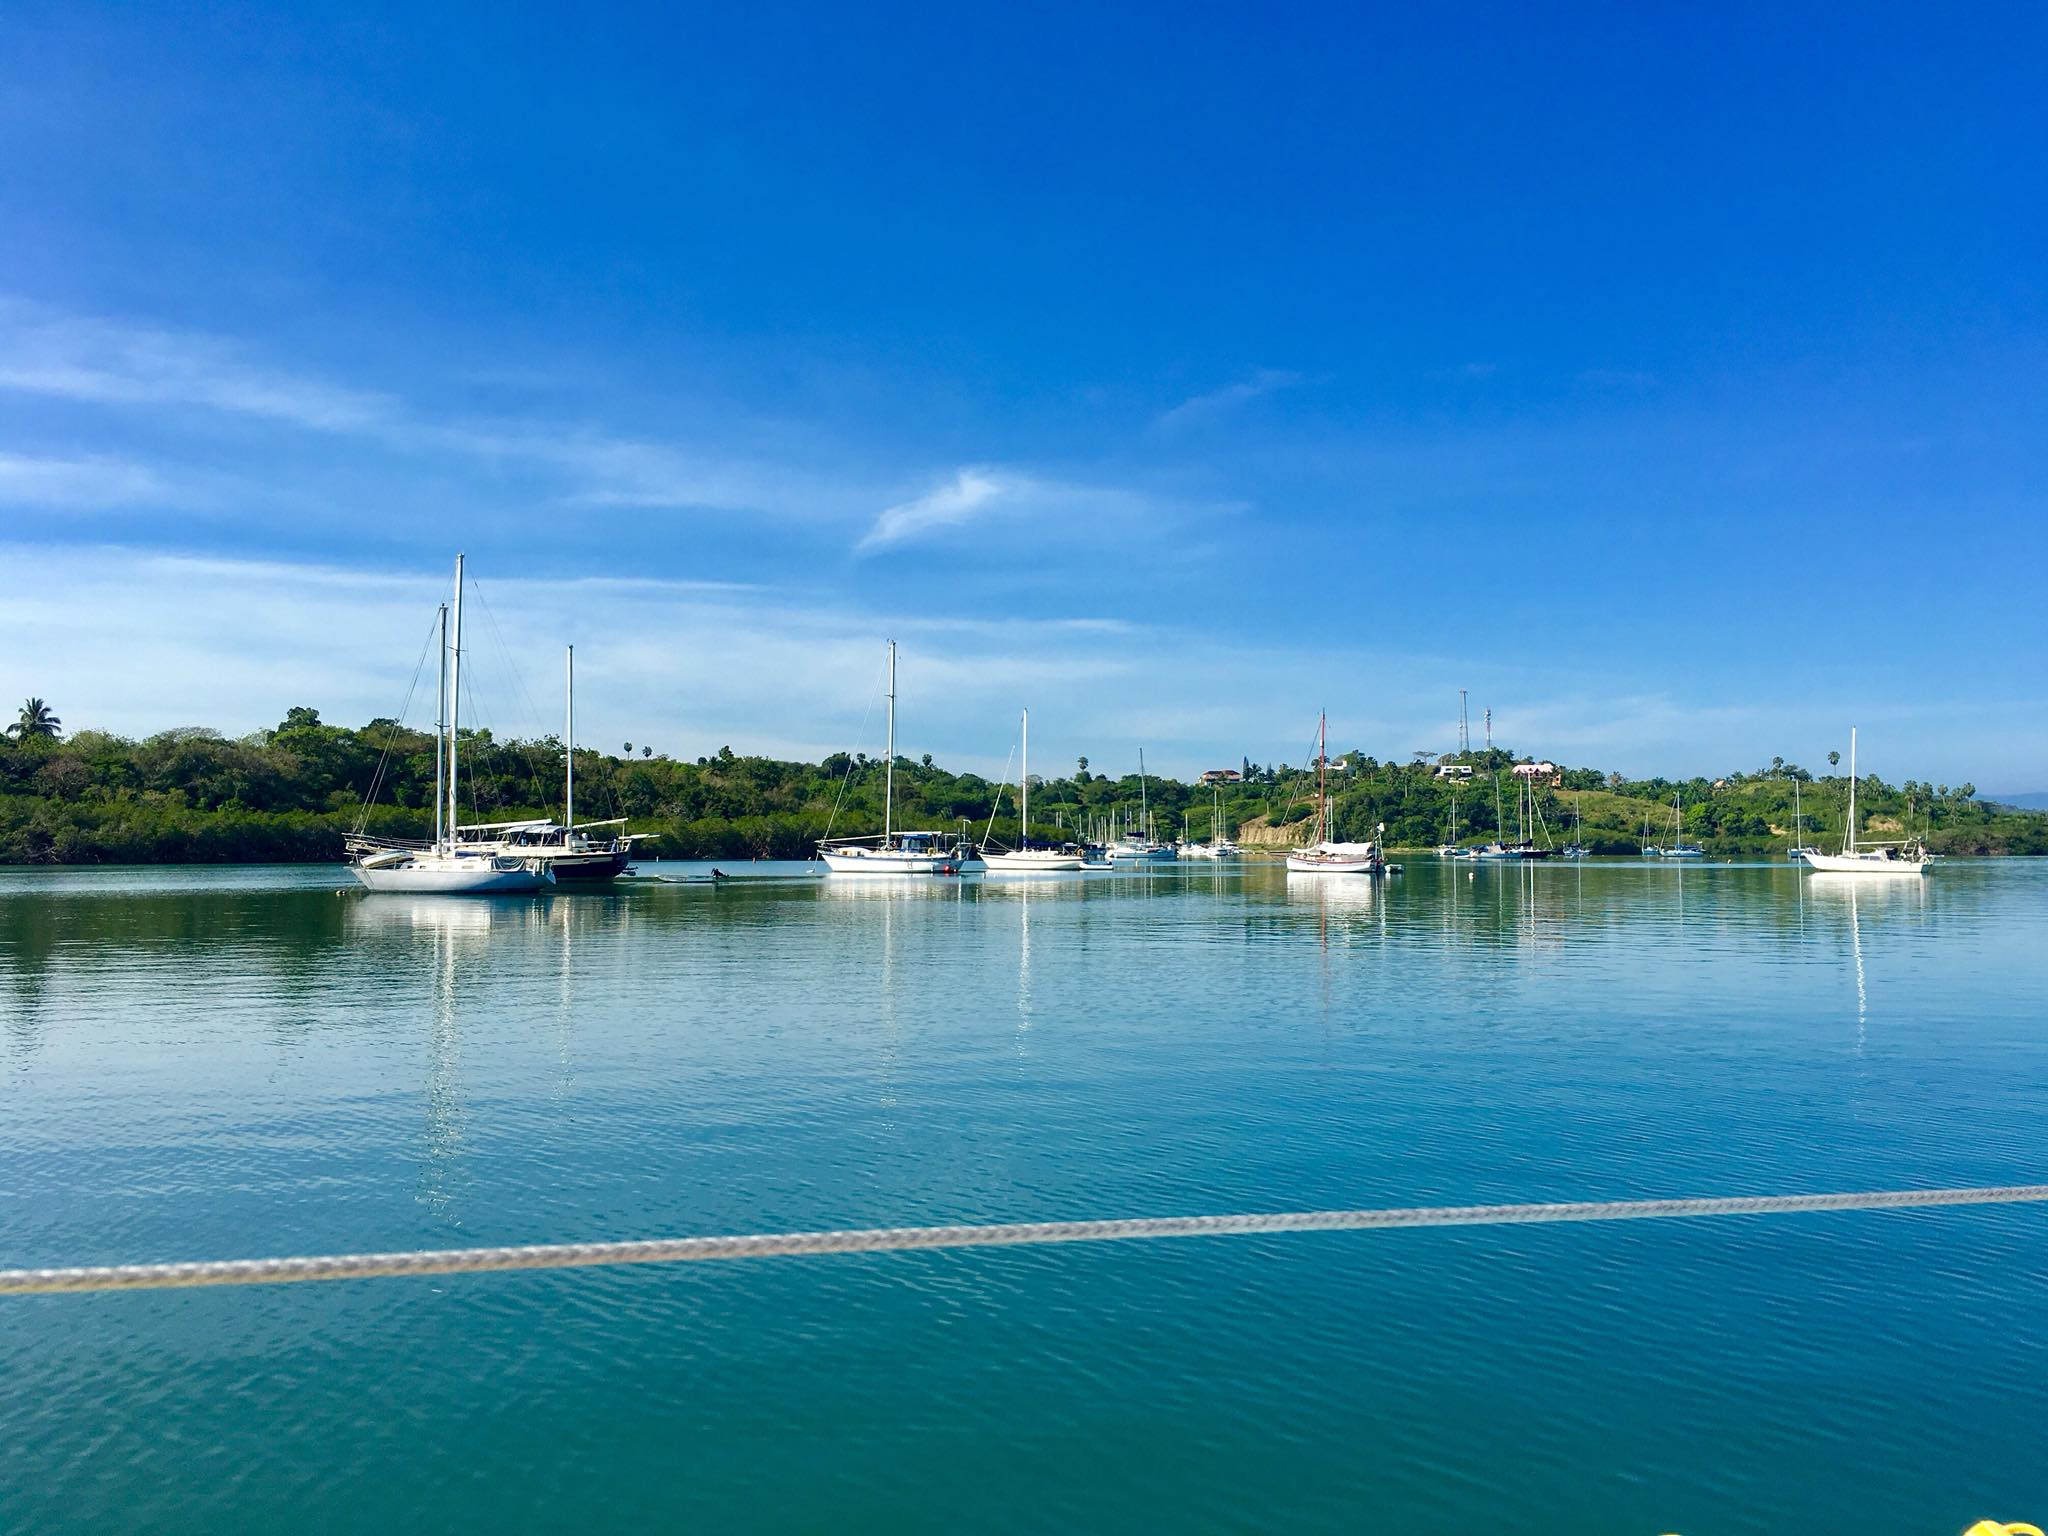 Sailing Life Day 61 & 62: Returning to our Sailboat in Luperon and adopting a new kitten!